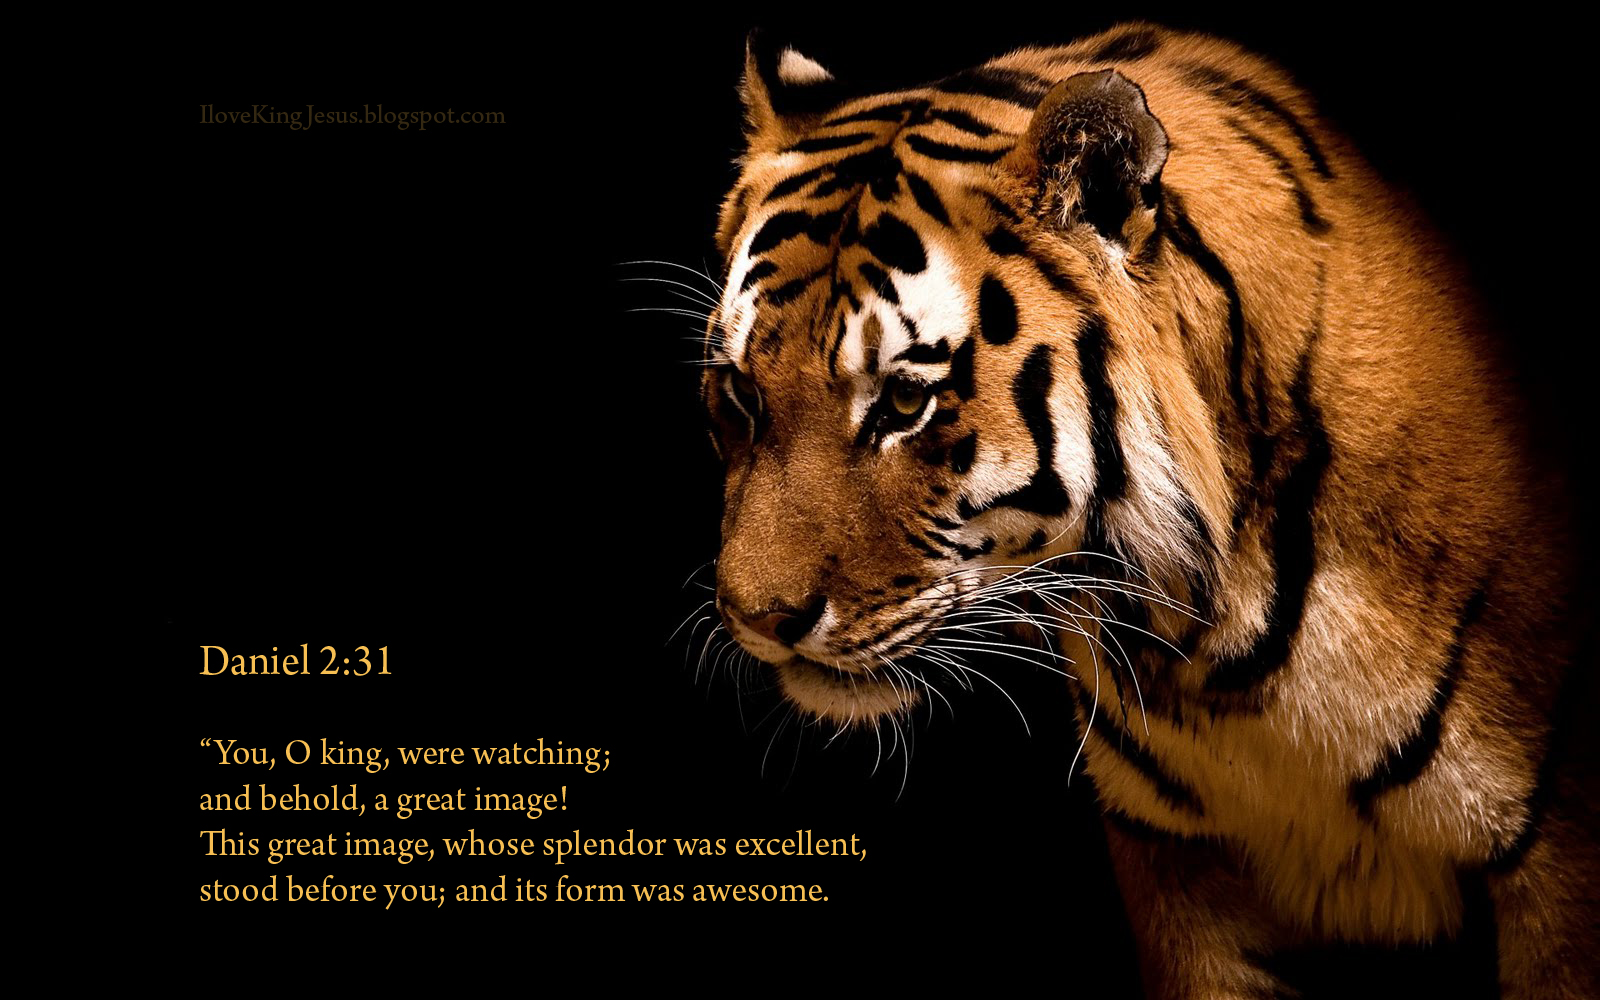 Free Download Hd New Year 2016 Bible Verse Greetings Card Wallpapers Hd 1600x1000 For Your Desktop Mobile Tablet Explore 47 Bible Wallpaper Hd Jesus Wallpapers With Bible Verses Free